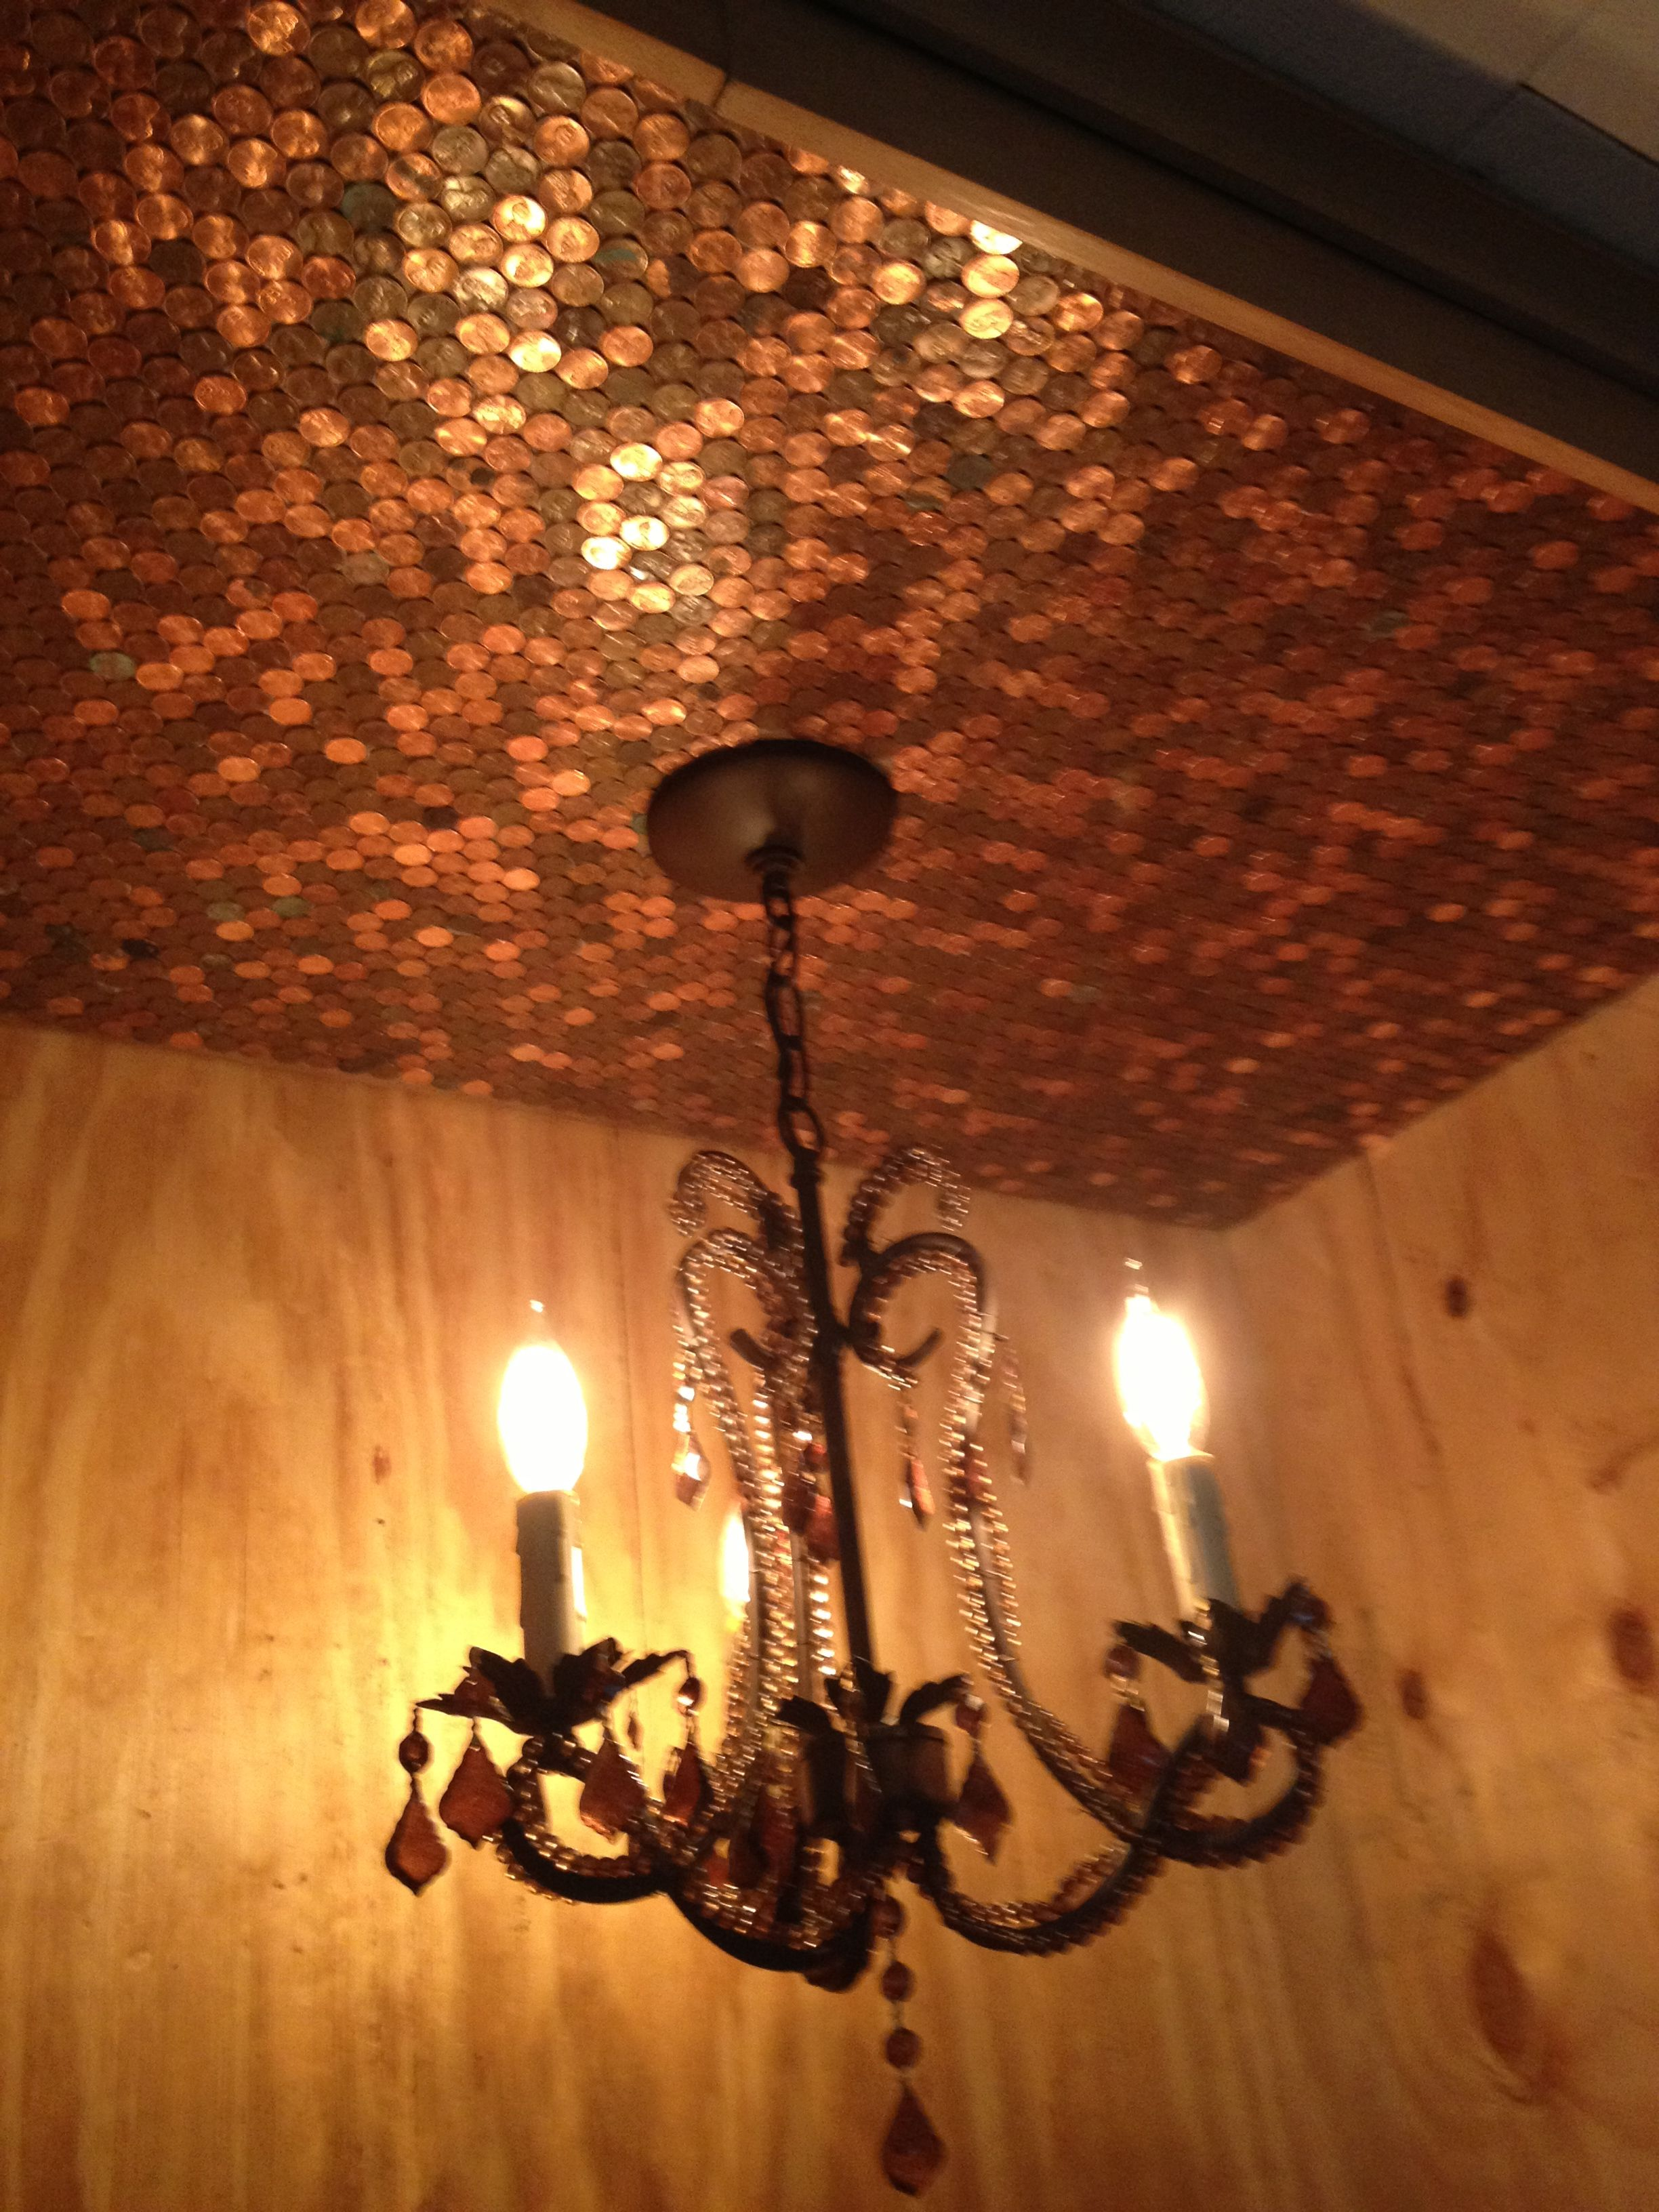 Pennies from heaven p diy crafts for me pinterest pennies copper ceiling made from pennies dailygadgetfo Choice Image